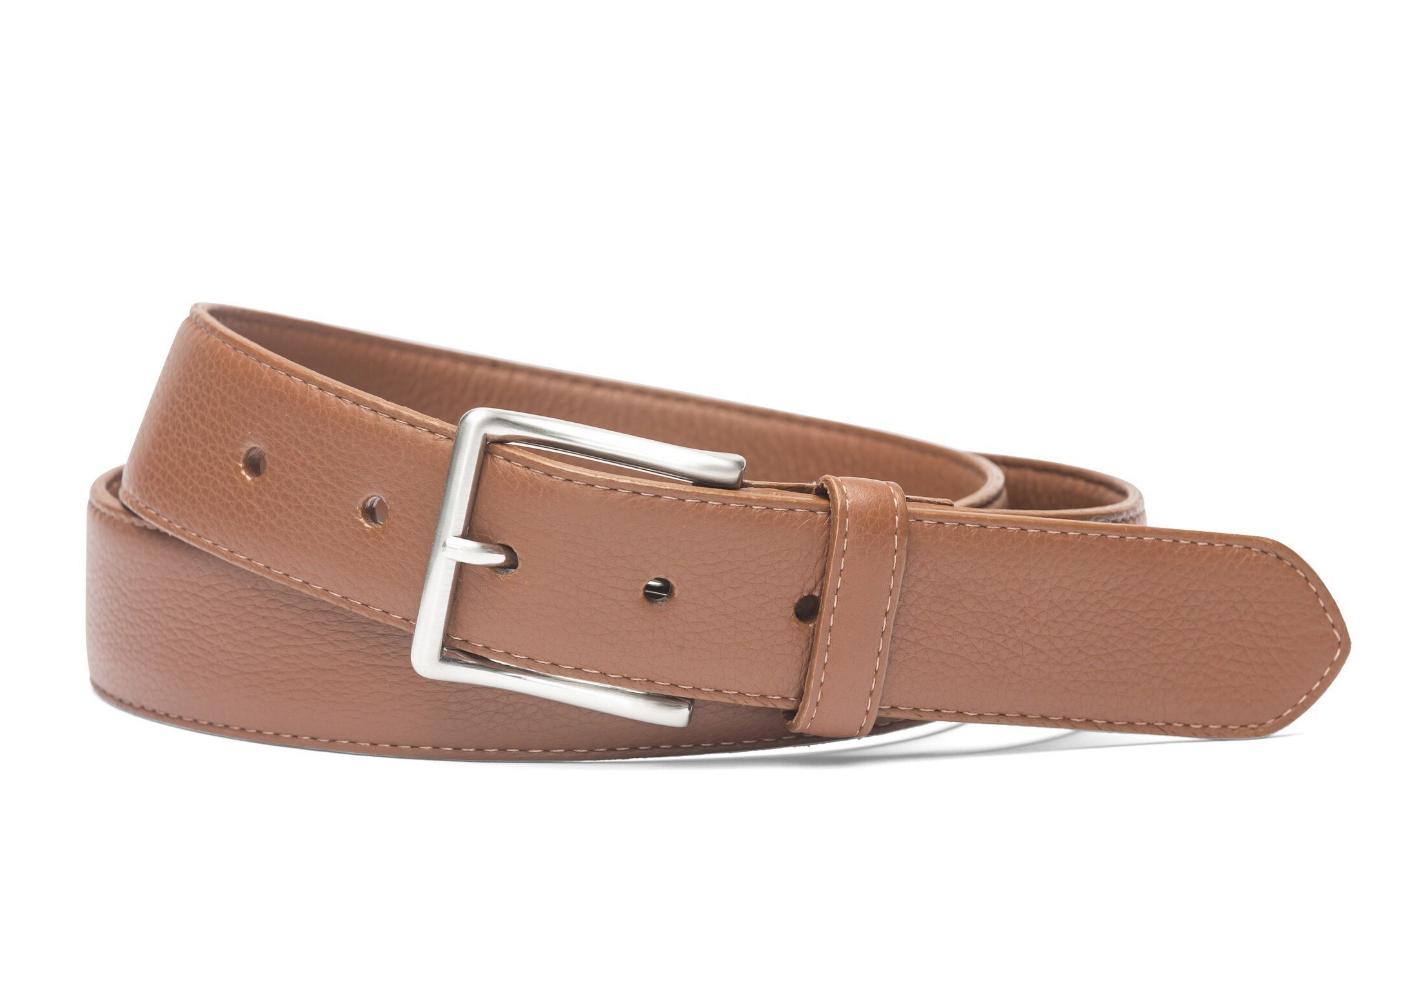 W.KLEINGBERG HIGH PEBBLED BELT - COGNAC WITH NAVY STITCHING